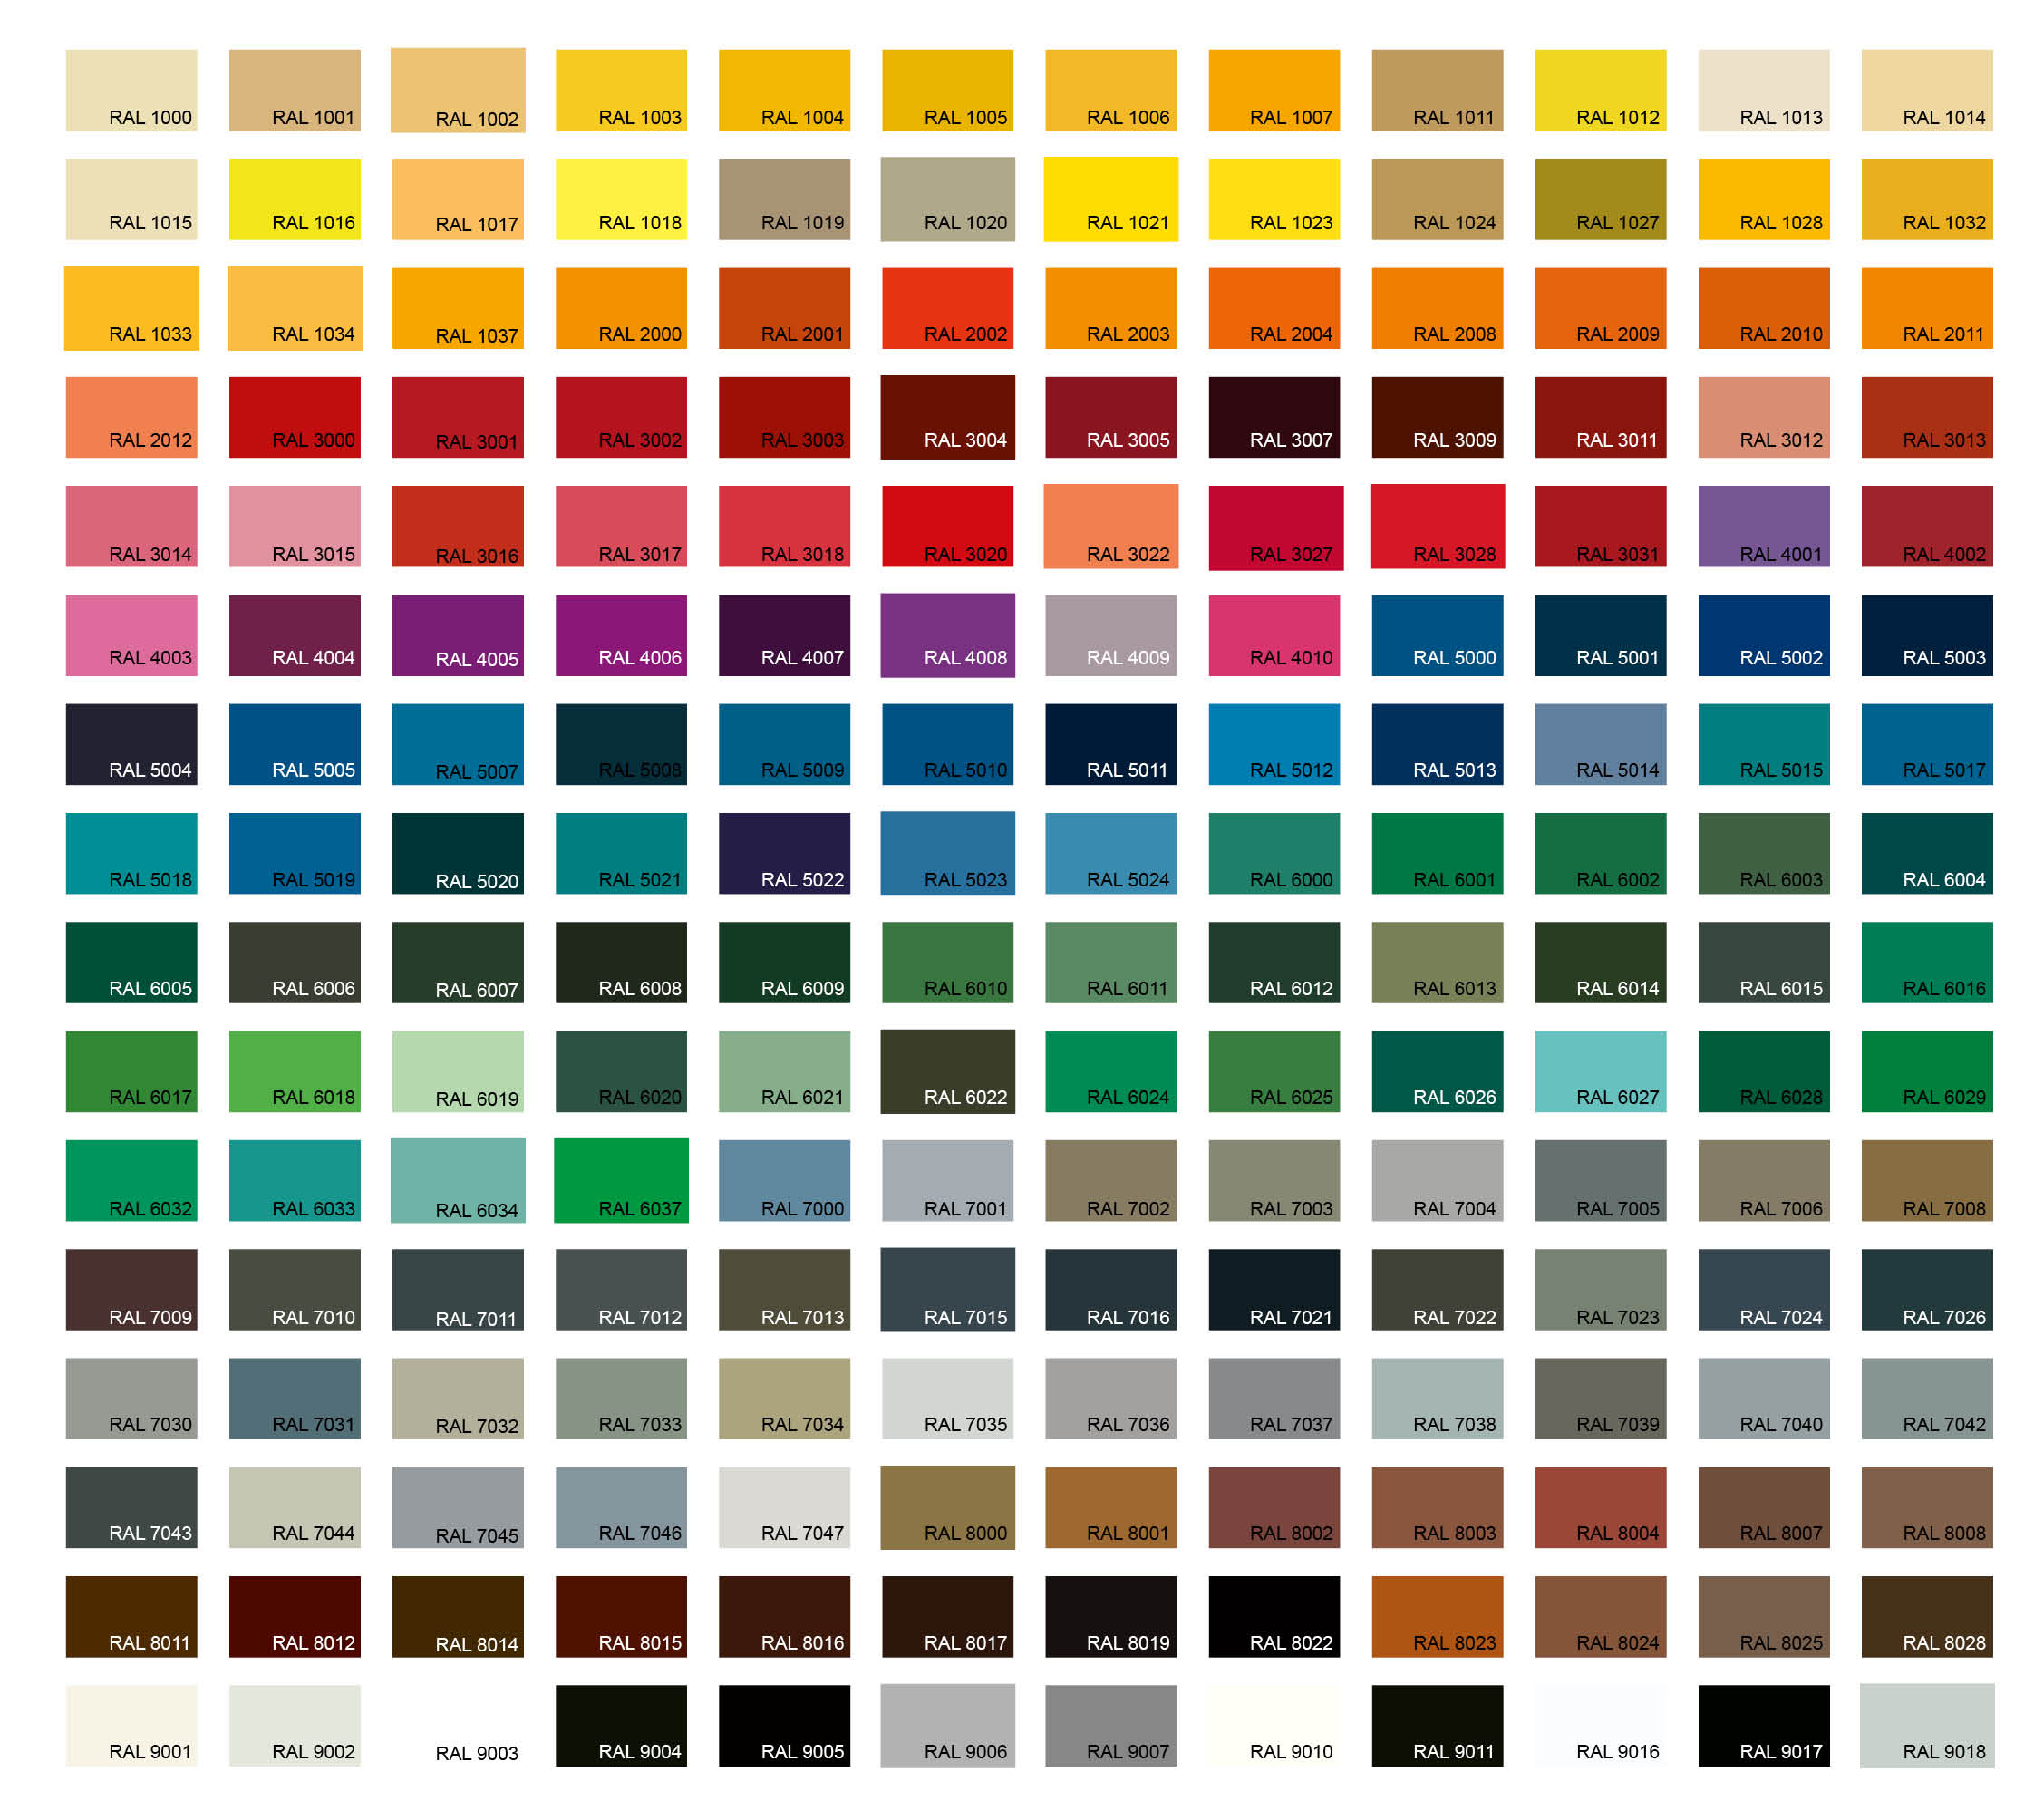 pantone to ral colour conversion chart brown pantone color chart images chart example ideas. Black Bedroom Furniture Sets. Home Design Ideas